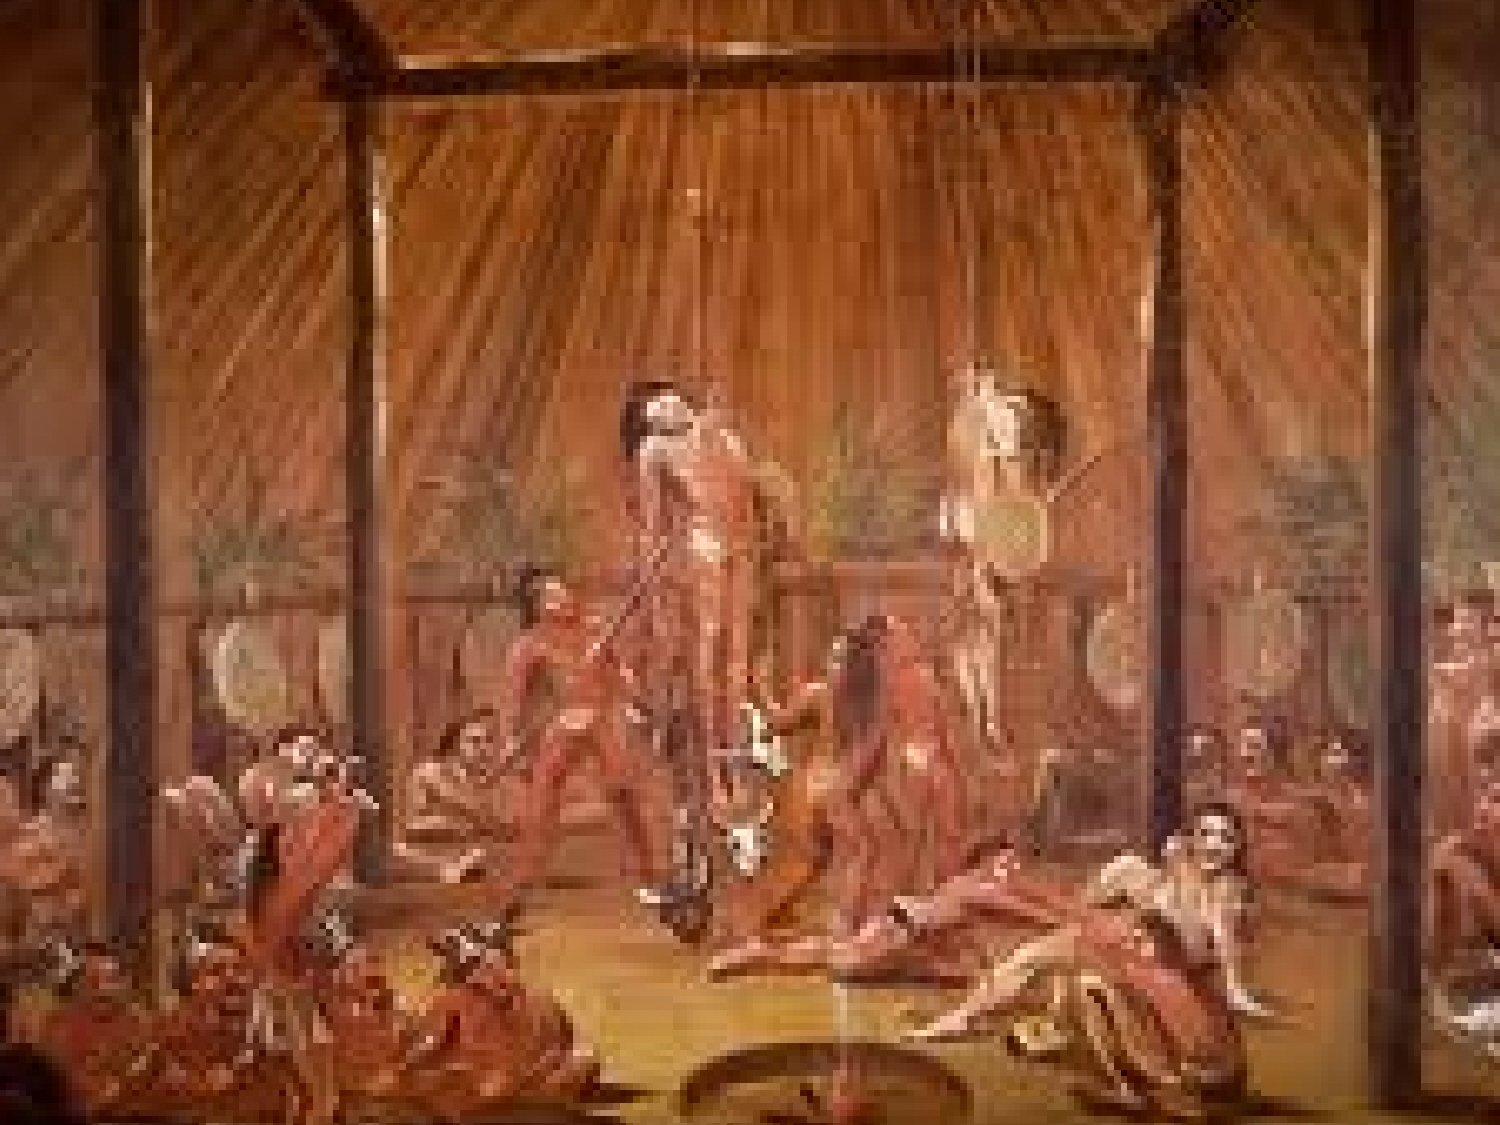 human sacrifice in aztec tradition Aztec religion is the mesoamerican religion practiced by the aztec empire like other mesoamerican religions, it had elements of human sacrifice in connection with a large number of religious festivals which were held according to patterns of the aztec calendar.